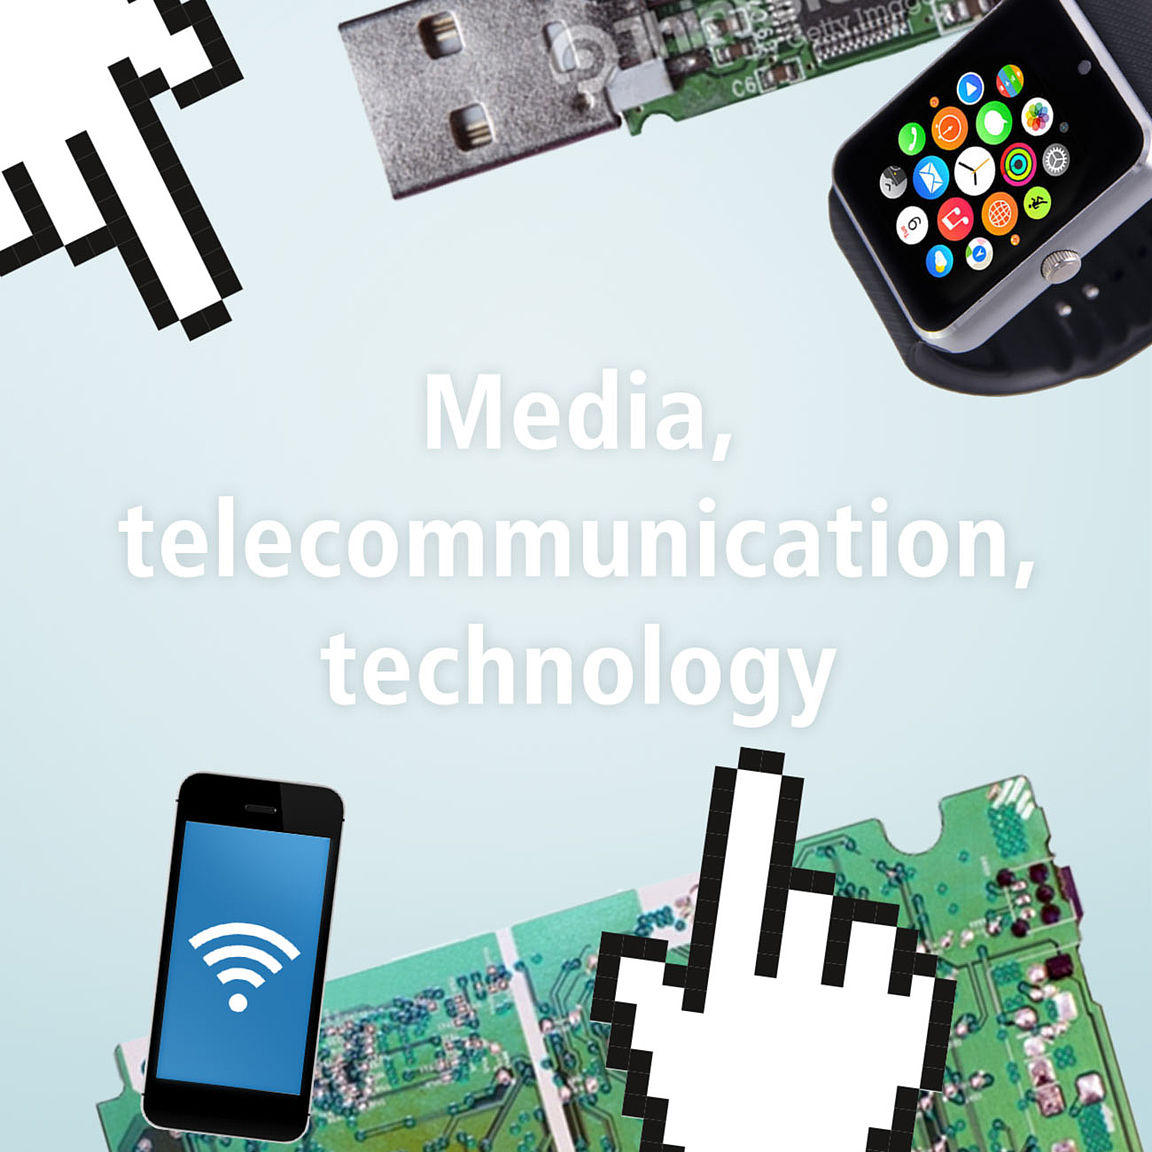 Media, telecommunication, technology